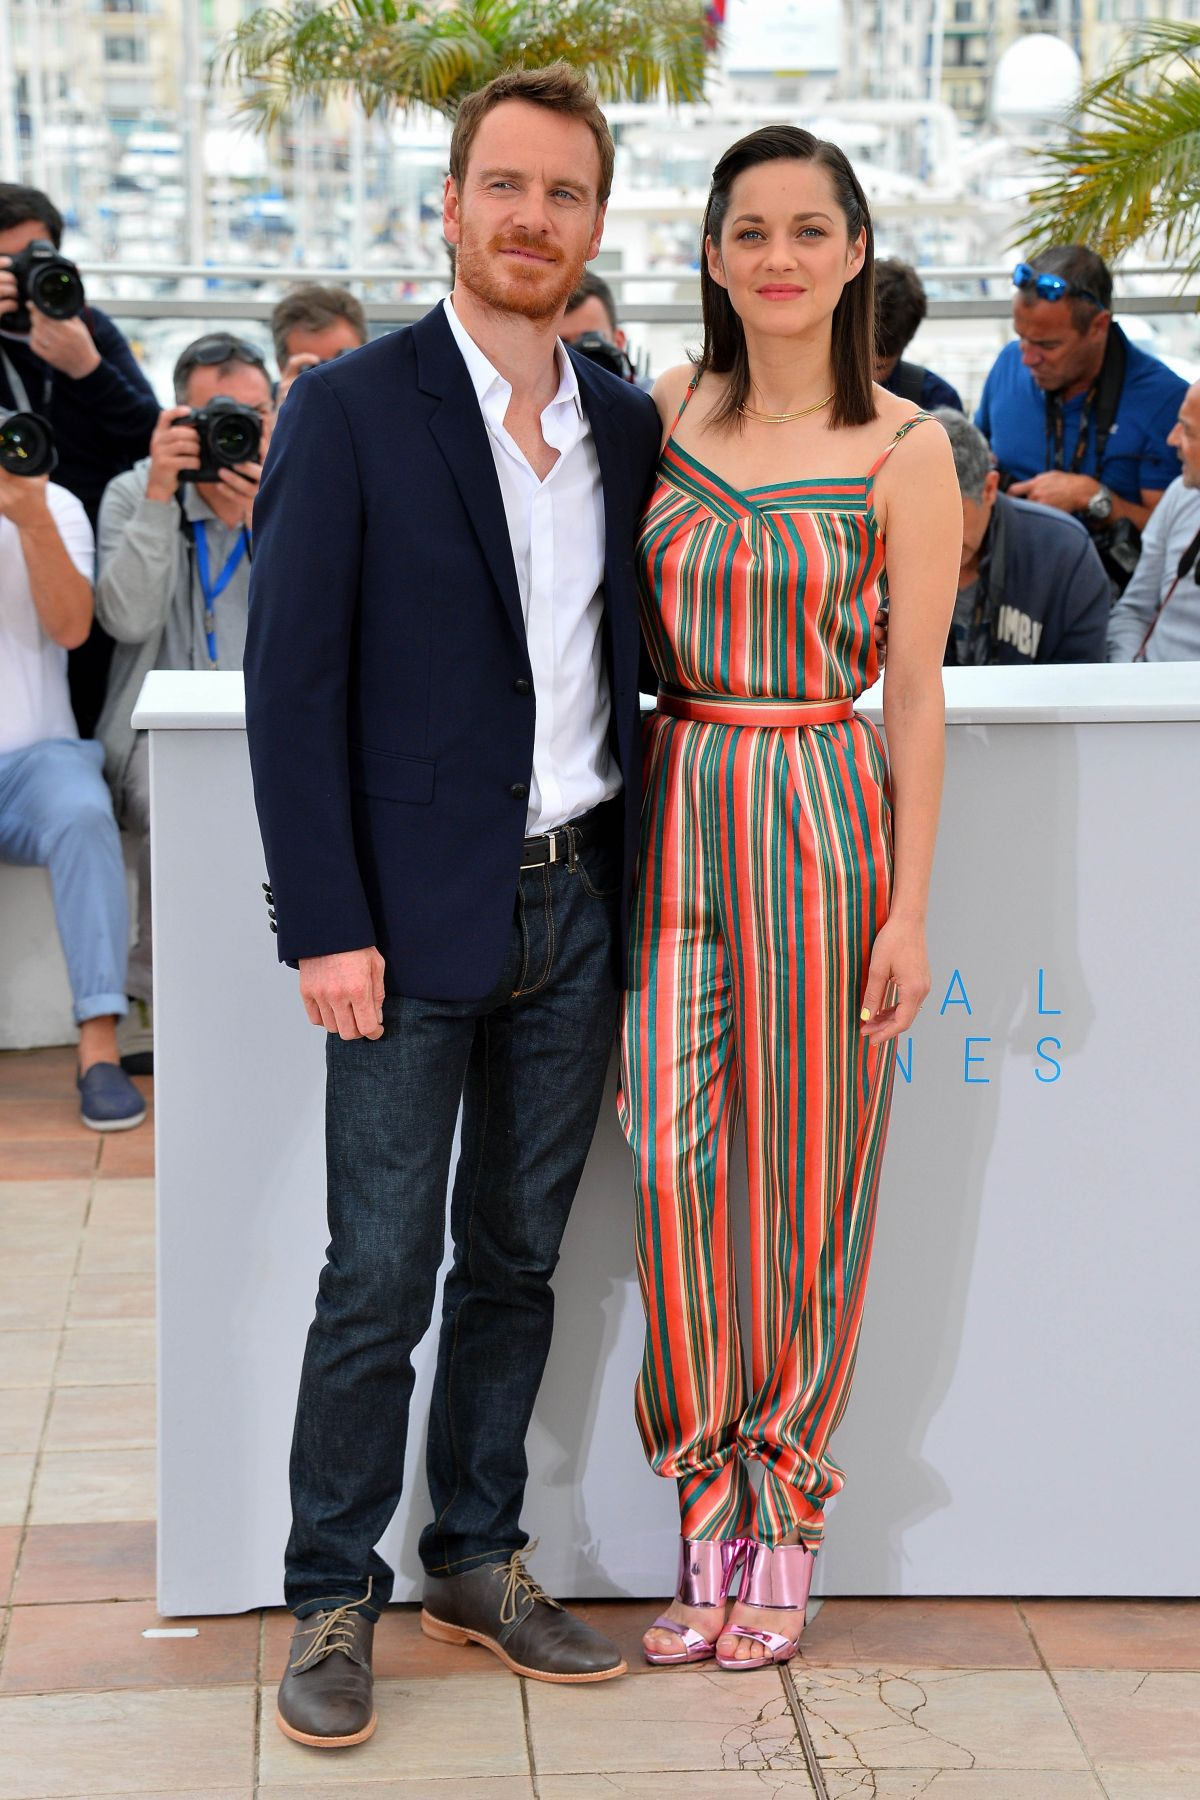 marion-cotillard-at-macneth-photocall-at-cannes-film-festival_4.jpg